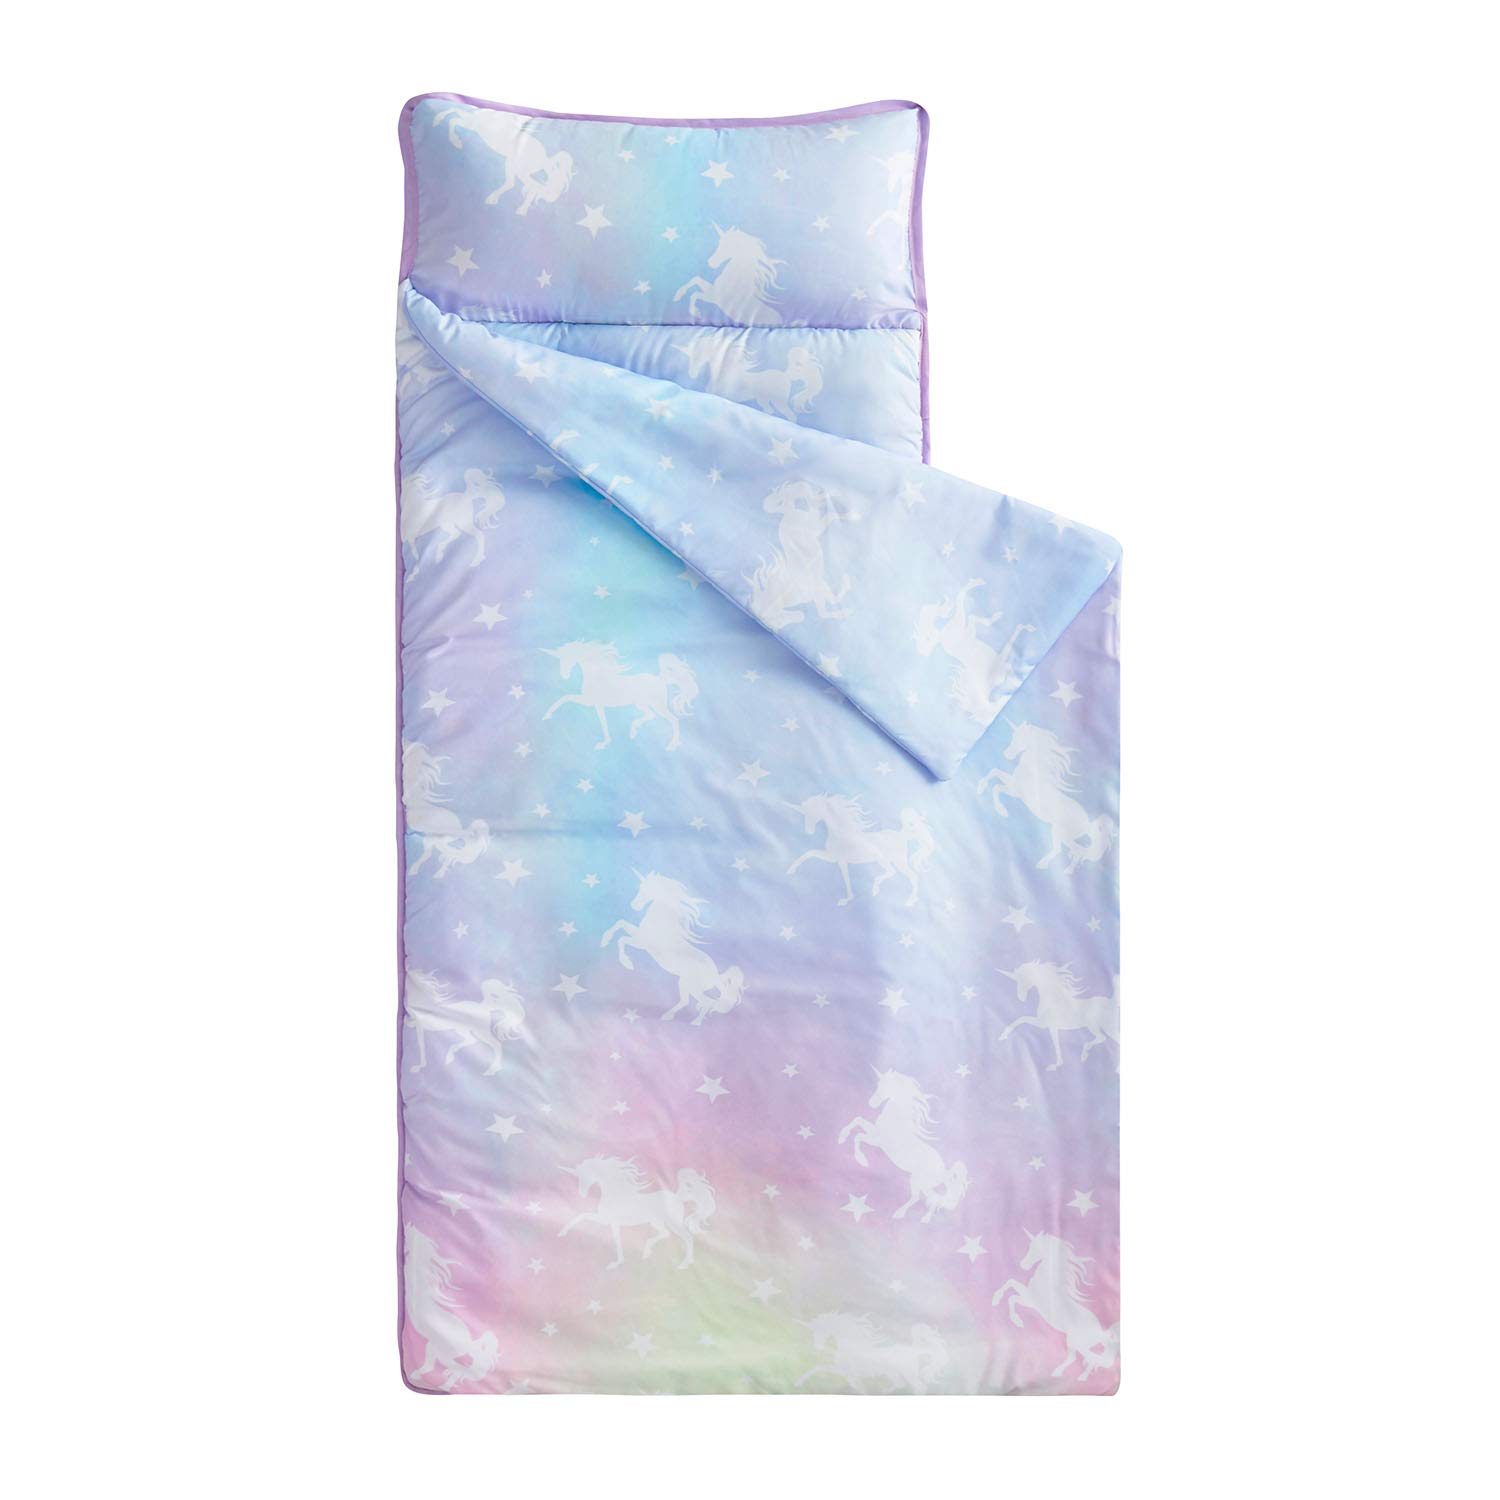 Wake In Cloud - Nap Mat with Removable Pillow for Kids Toddler Boys Girls Daycare Preschool Kindergarten Sleeping Bag, Colorful Unicorns Stars, 100% Soft Microfiber (55